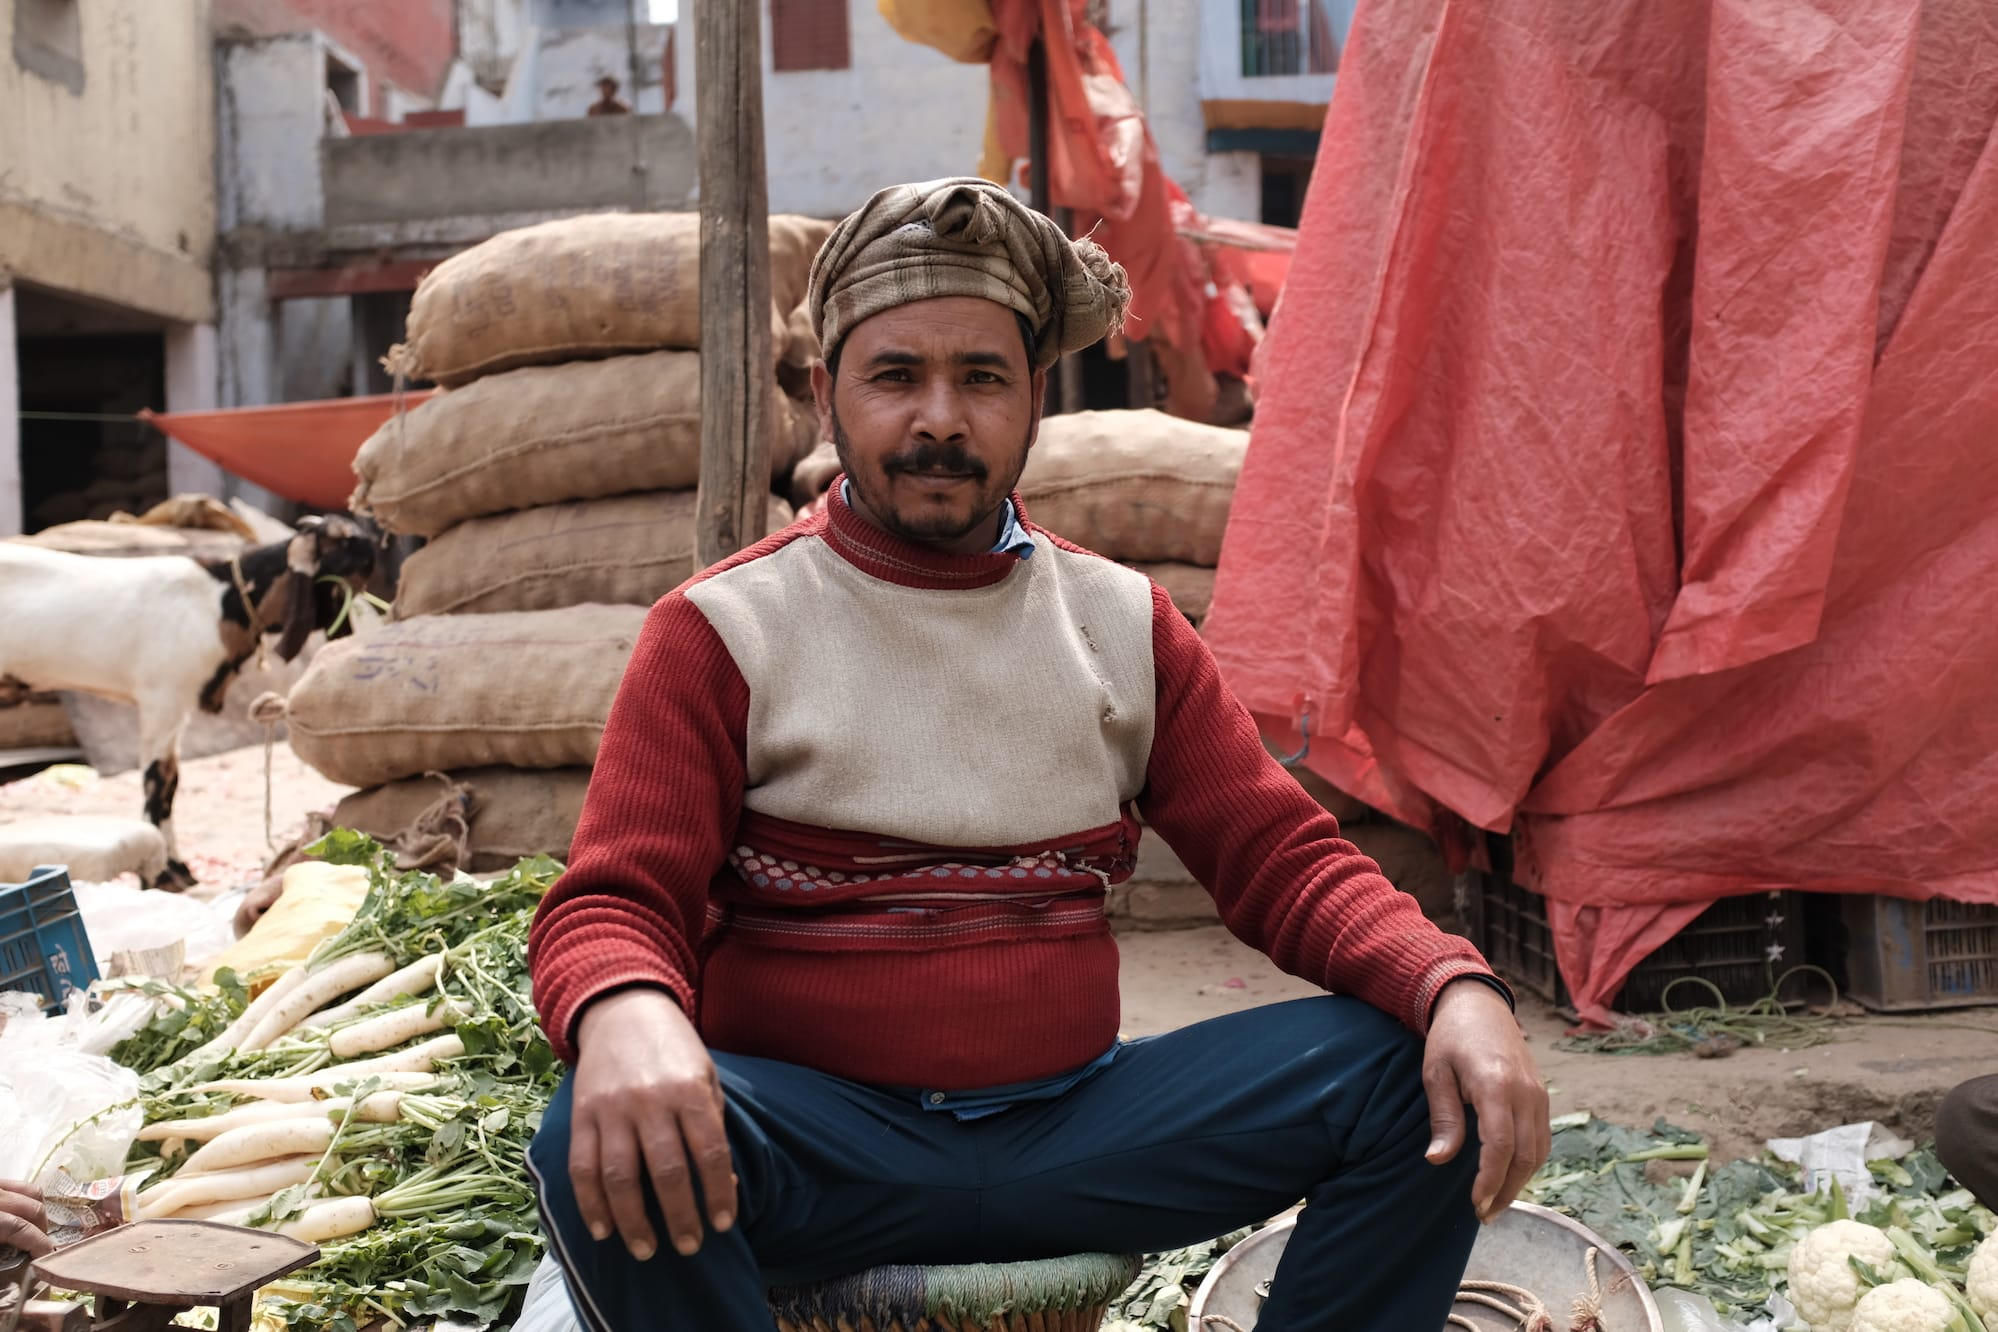 A Vegetable Seller Poses for a Picture in Delhi, India